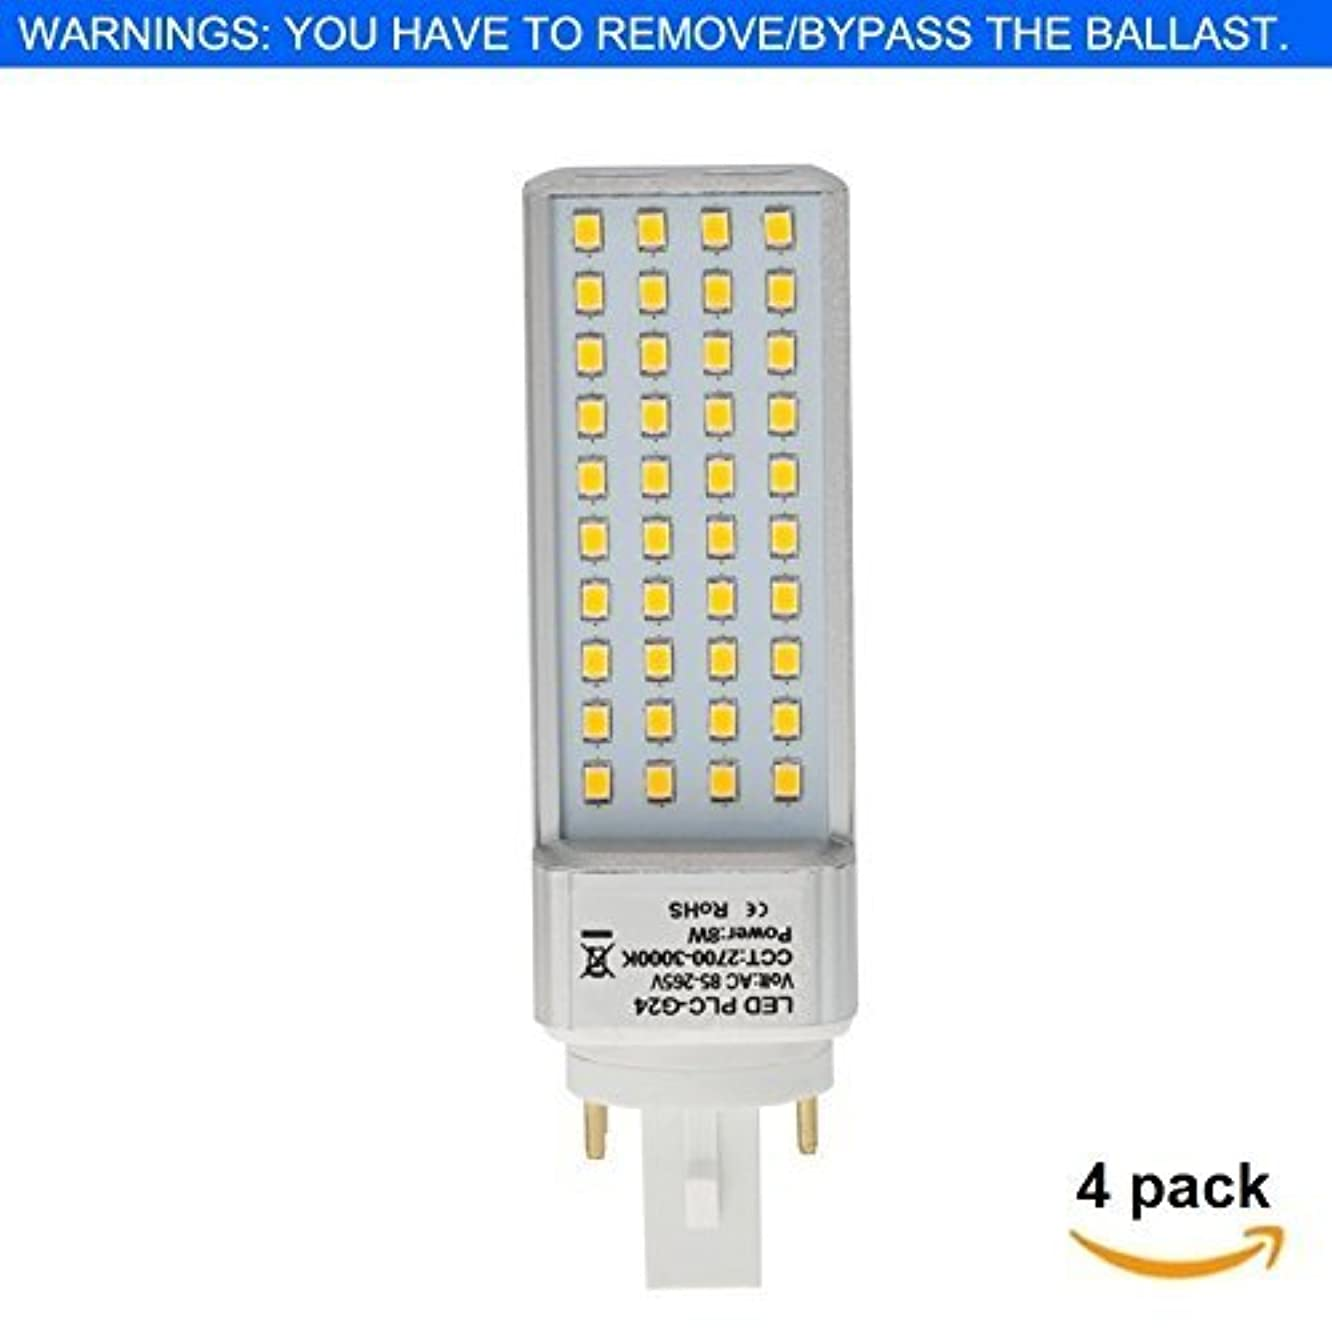 HERO-LED  G24-40S-4P-DW Rotatable PL-C Lamp G24Q 4-Pin LED CFL/Compact Fluorescent Lamp, 8W, 18W Equal, Daylight White 5000K, 4-Pack (Remove/Bypass The Ballast)